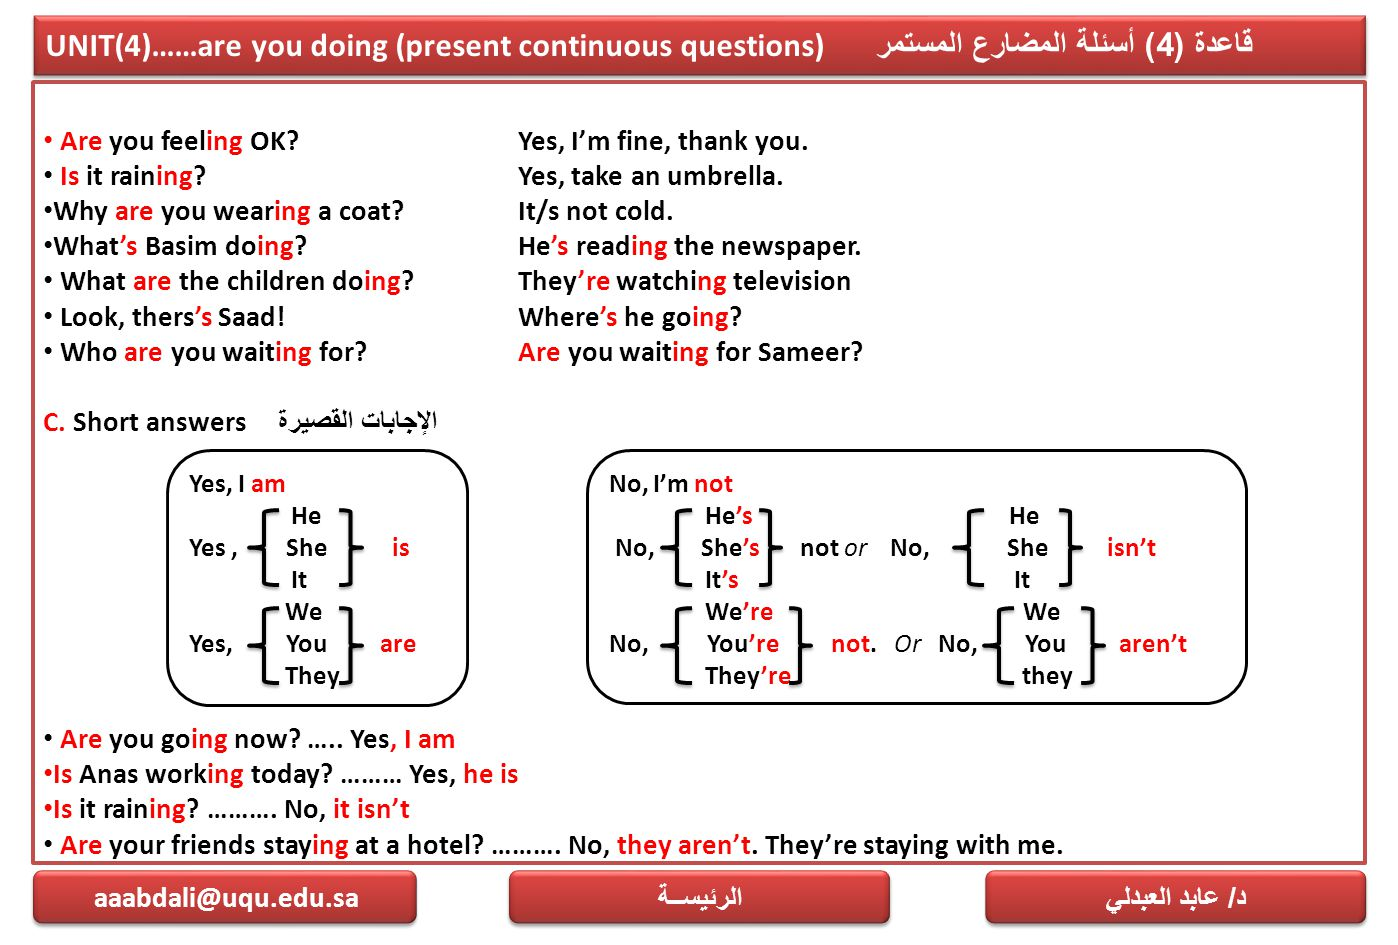 UNIT(4)……are you doing (present continuous questions) قاعدة (4) أسئلة المضارع المستمر Are you feeling OK?Yes, I'm fine, thank you. Is it raining?Yes,